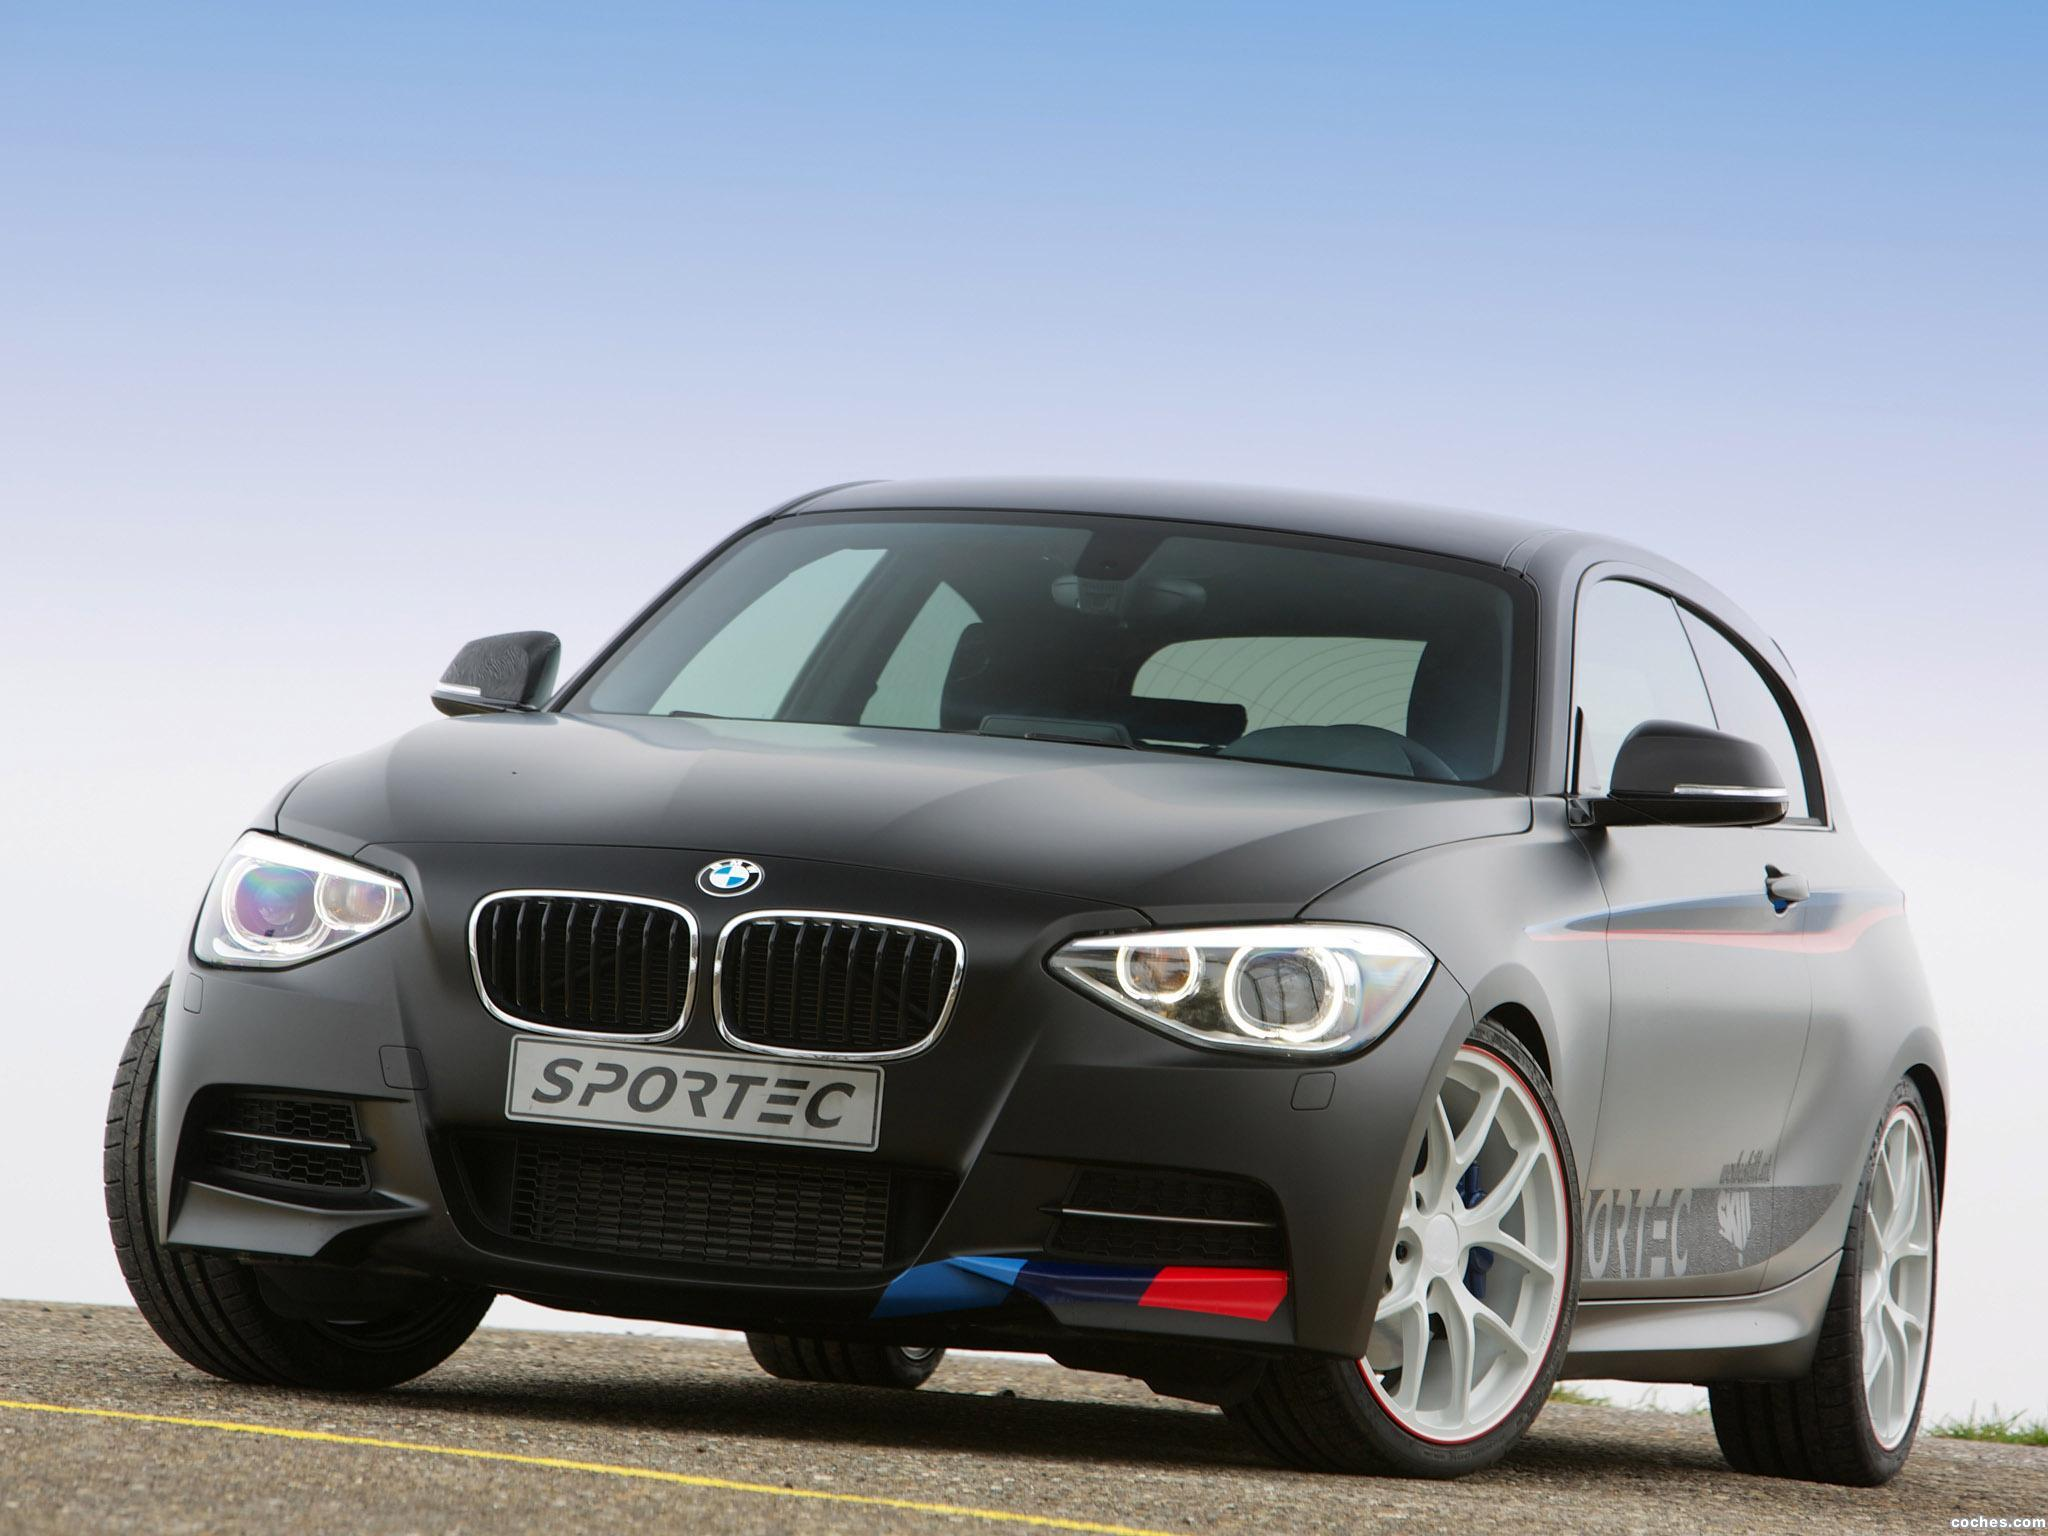 fotos de bmw sportec serie 1 m135i f21 2013. Black Bedroom Furniture Sets. Home Design Ideas